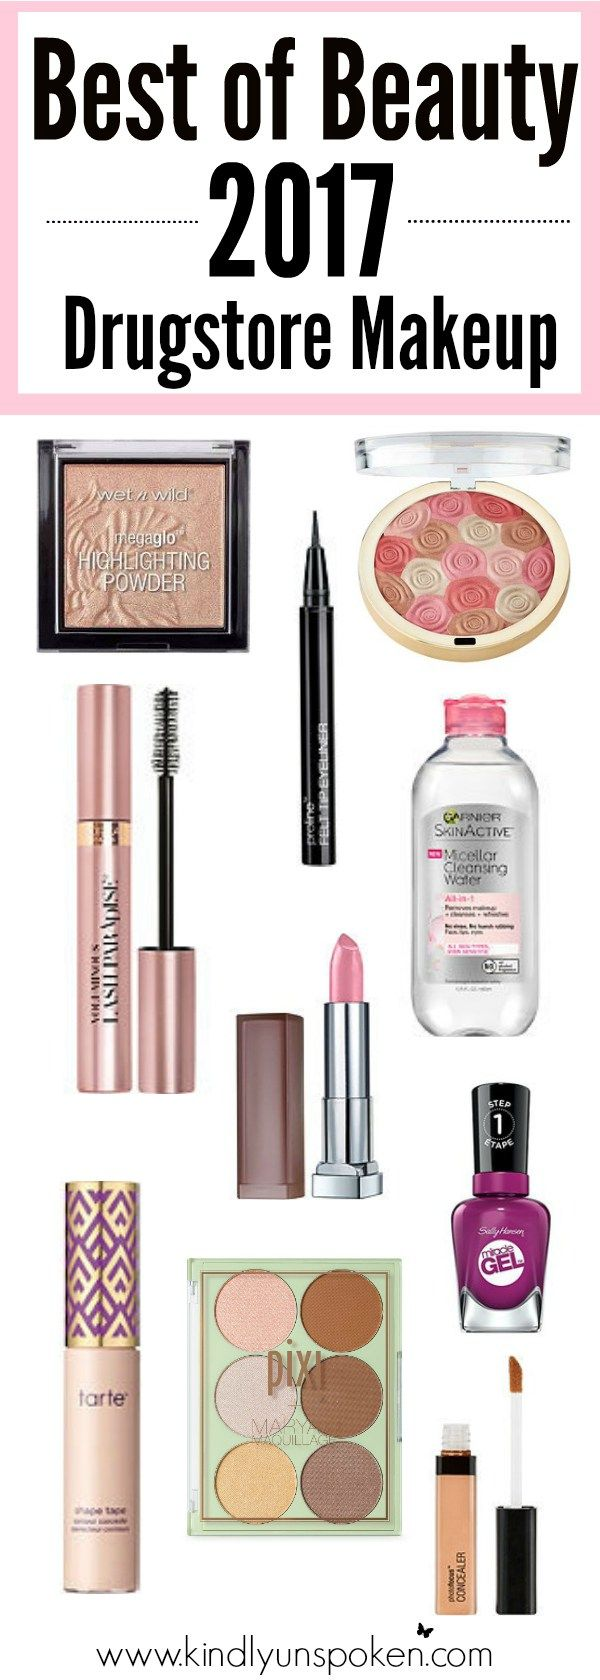 Check out the Best Affordable Makeup & Beauty Products of 2017, including best-selling drugstore makeup items and affordable beauty products that any beauty lover will want to have in their makeup collection!